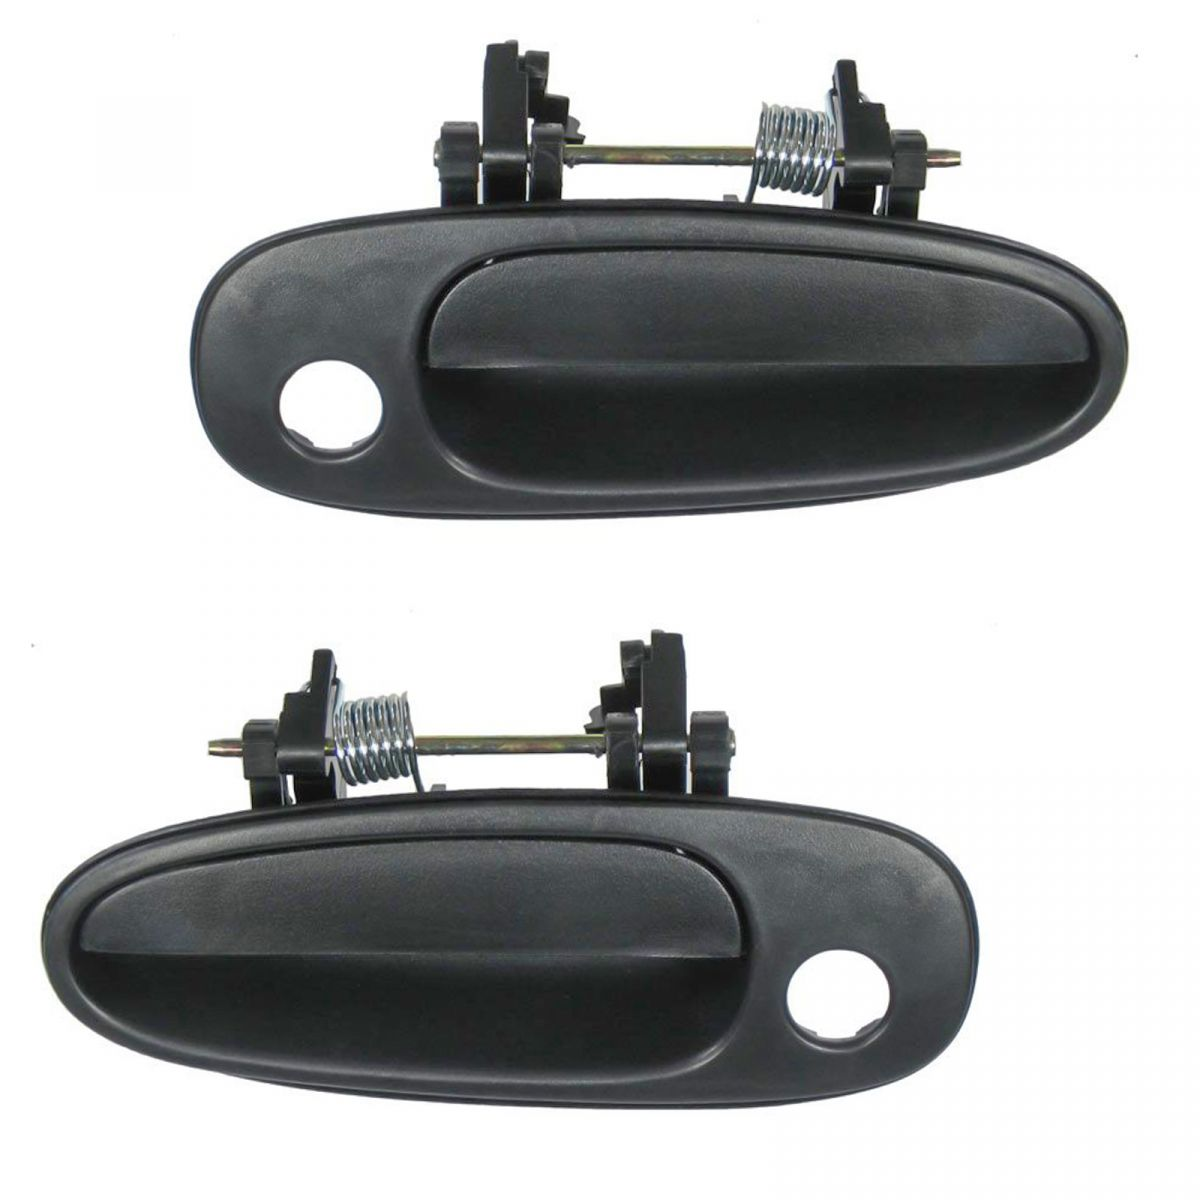 NEW Outside Door Handle Front Right Fit For Geo Prizm Toyota Corolla 6921012160